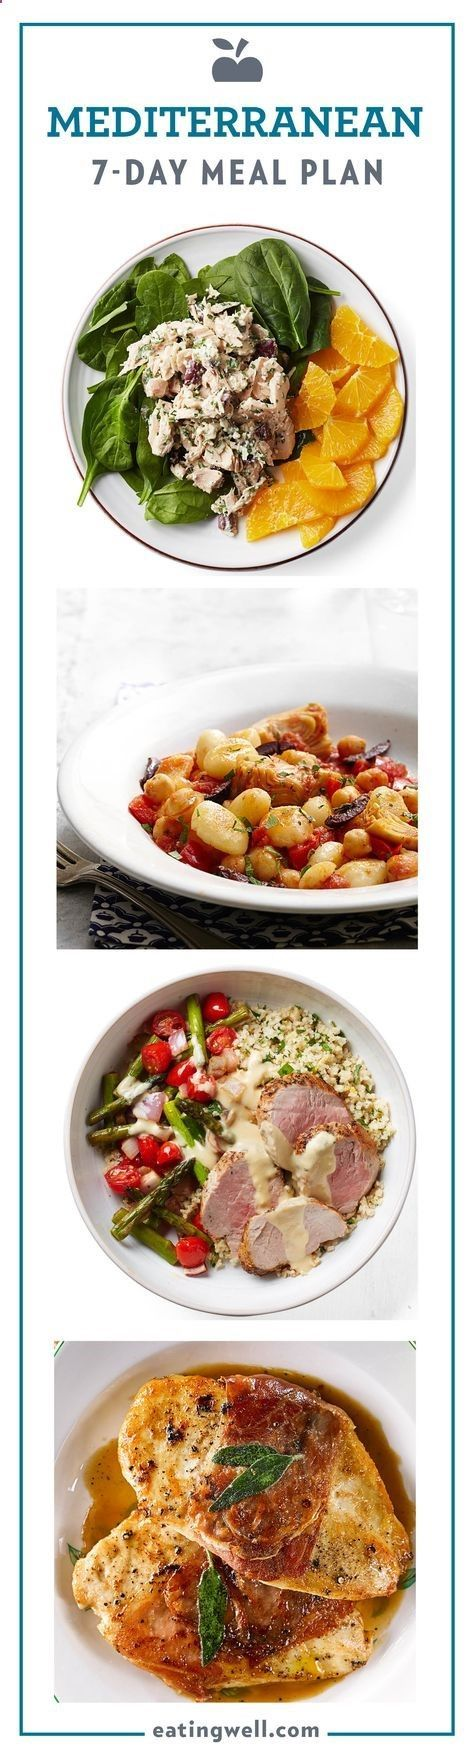 Fat Burning Meals Plan-Tips 7-Day Mediterranean Diet Meal Plan to Lose Weight - We Have Developed The Simplest And Fastest Way To Preparing And Eating Delicious Fat Burning Meals Every Day For The Rest Of Your Life mediterranean diet plan